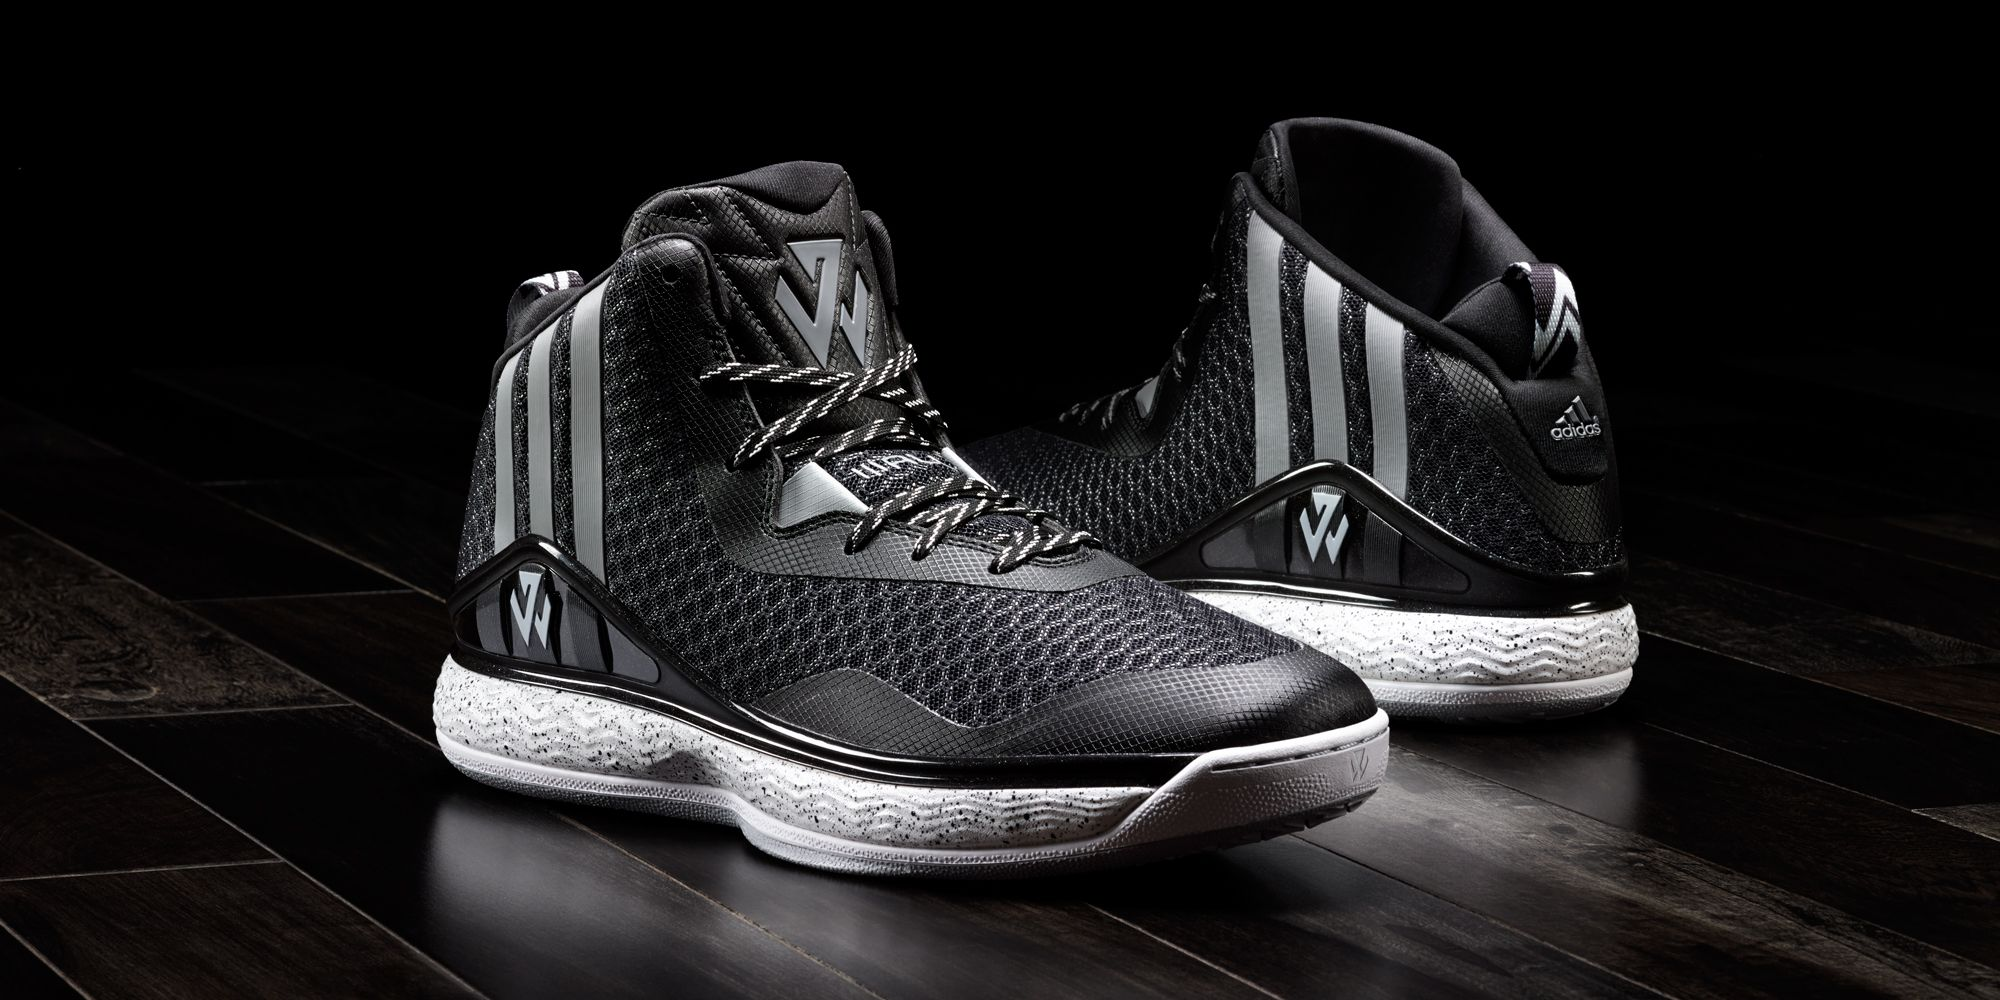 092914: adidas Basketball Releases the J Wall 1; Adi's